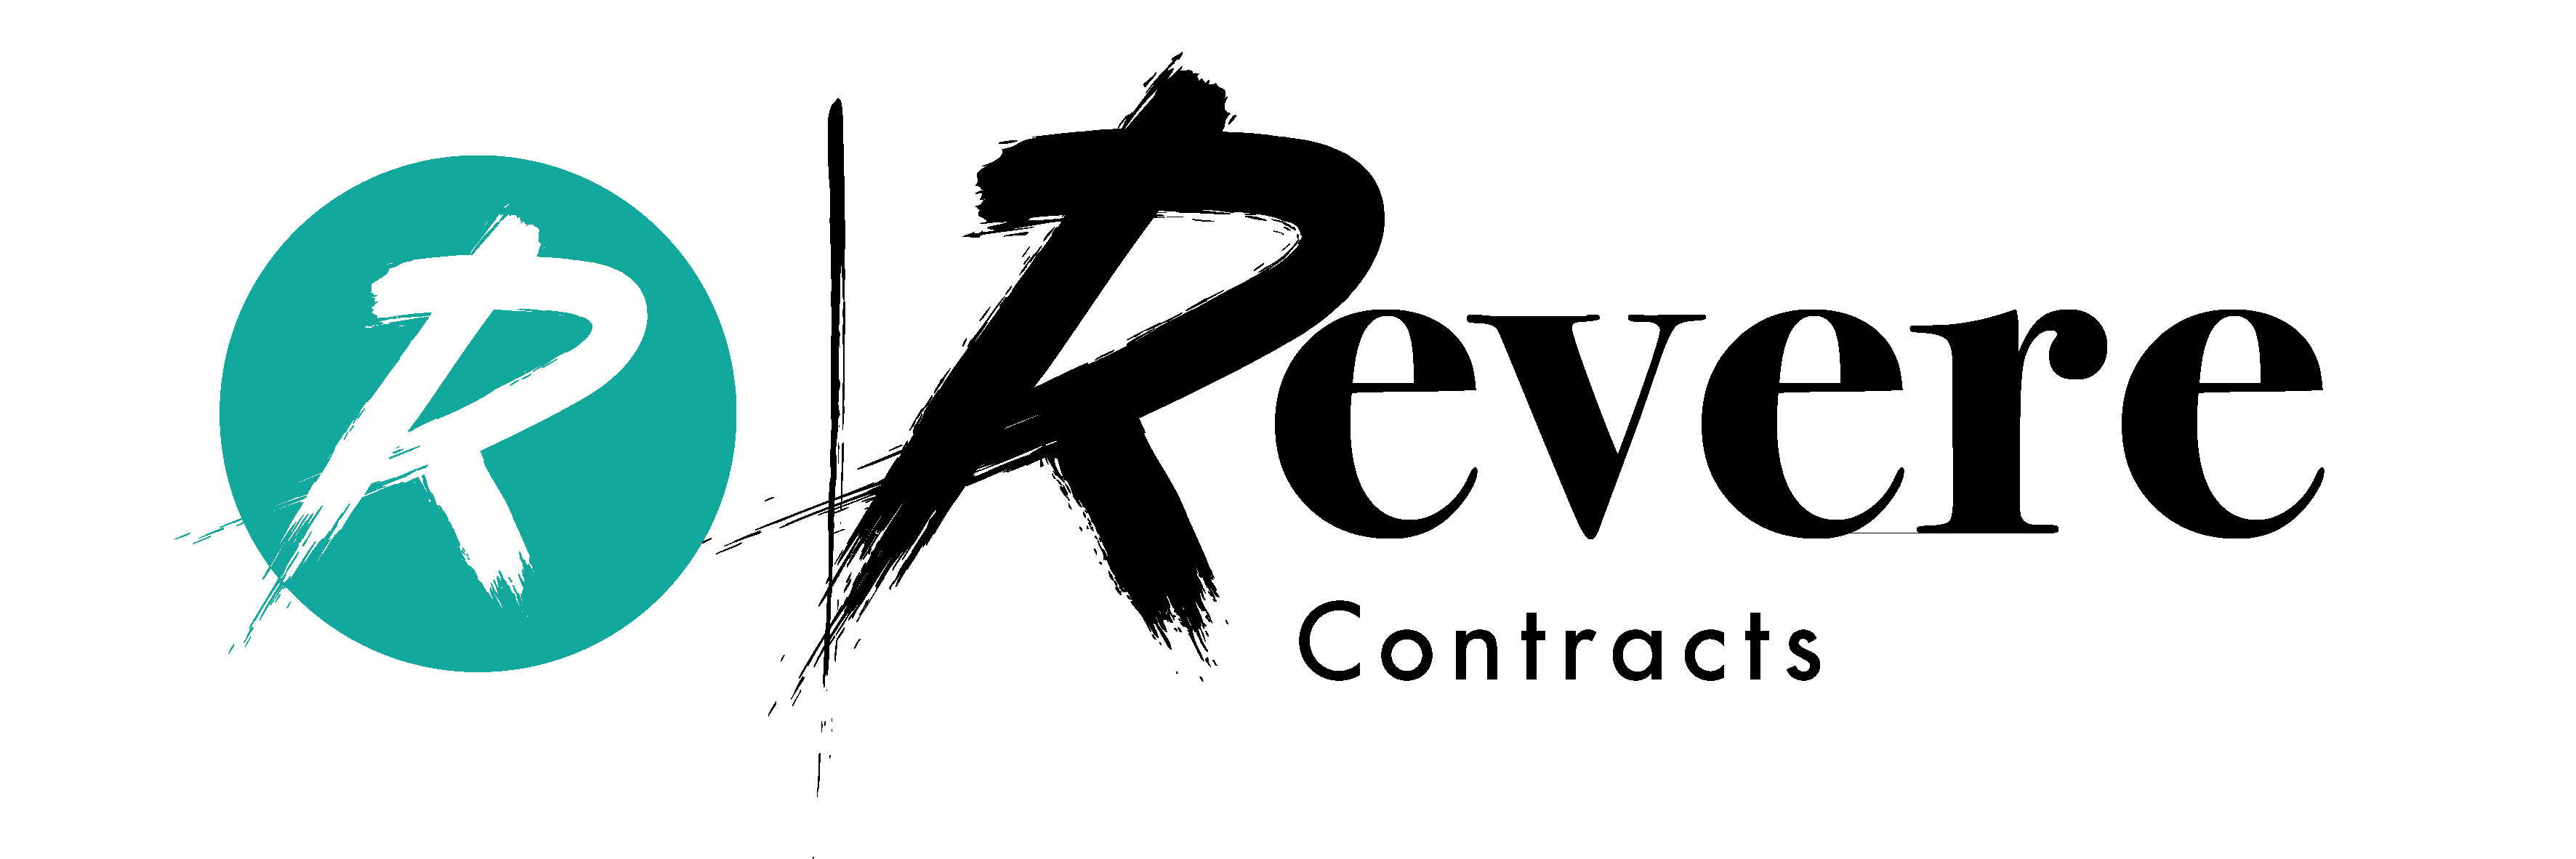 PR campaign for Revere Contracts